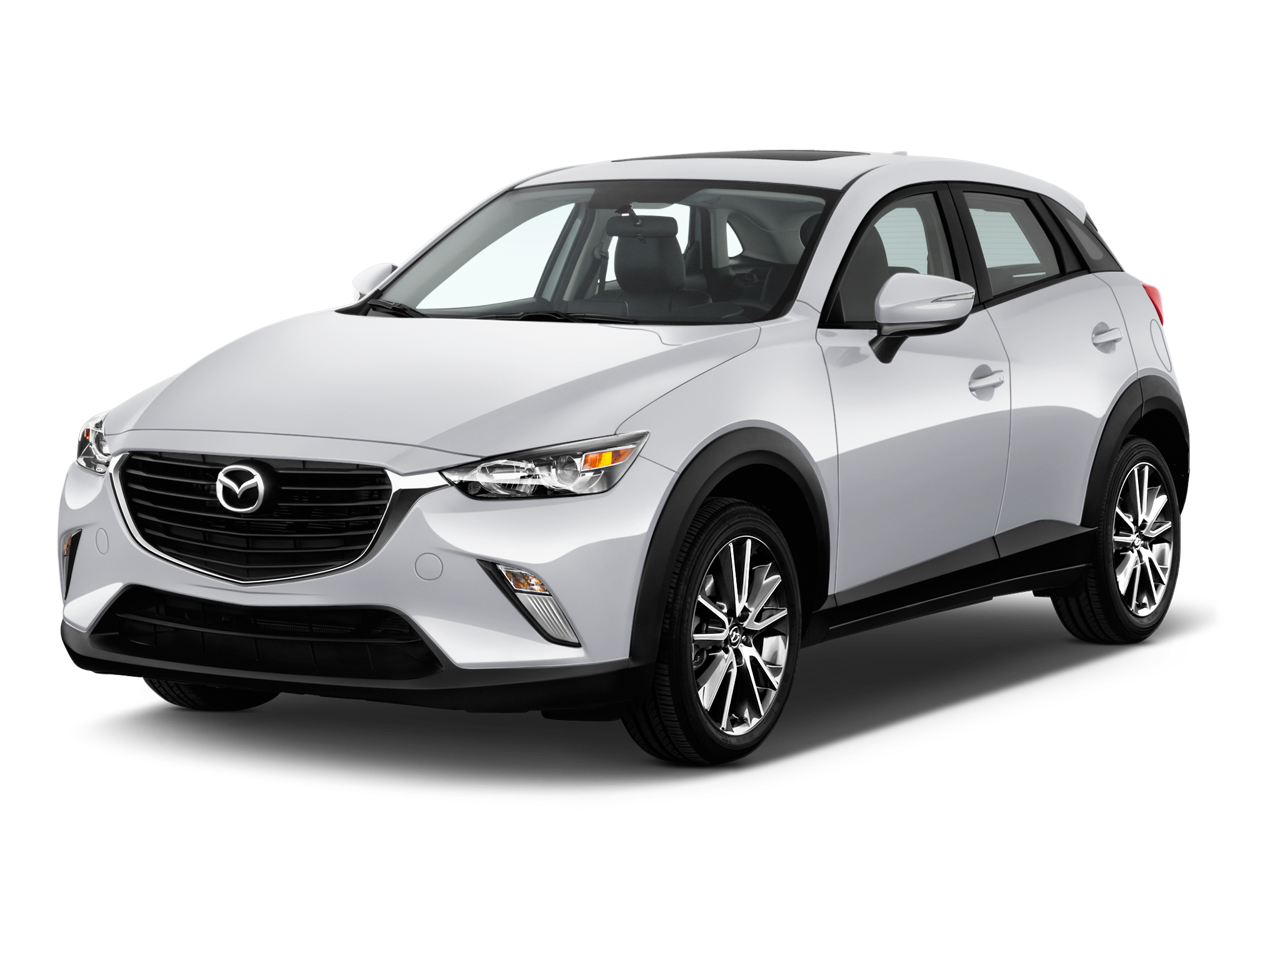 new 2017 mazda cx 3 grand touring near augusta ga gerald jones mazda. Black Bedroom Furniture Sets. Home Design Ideas